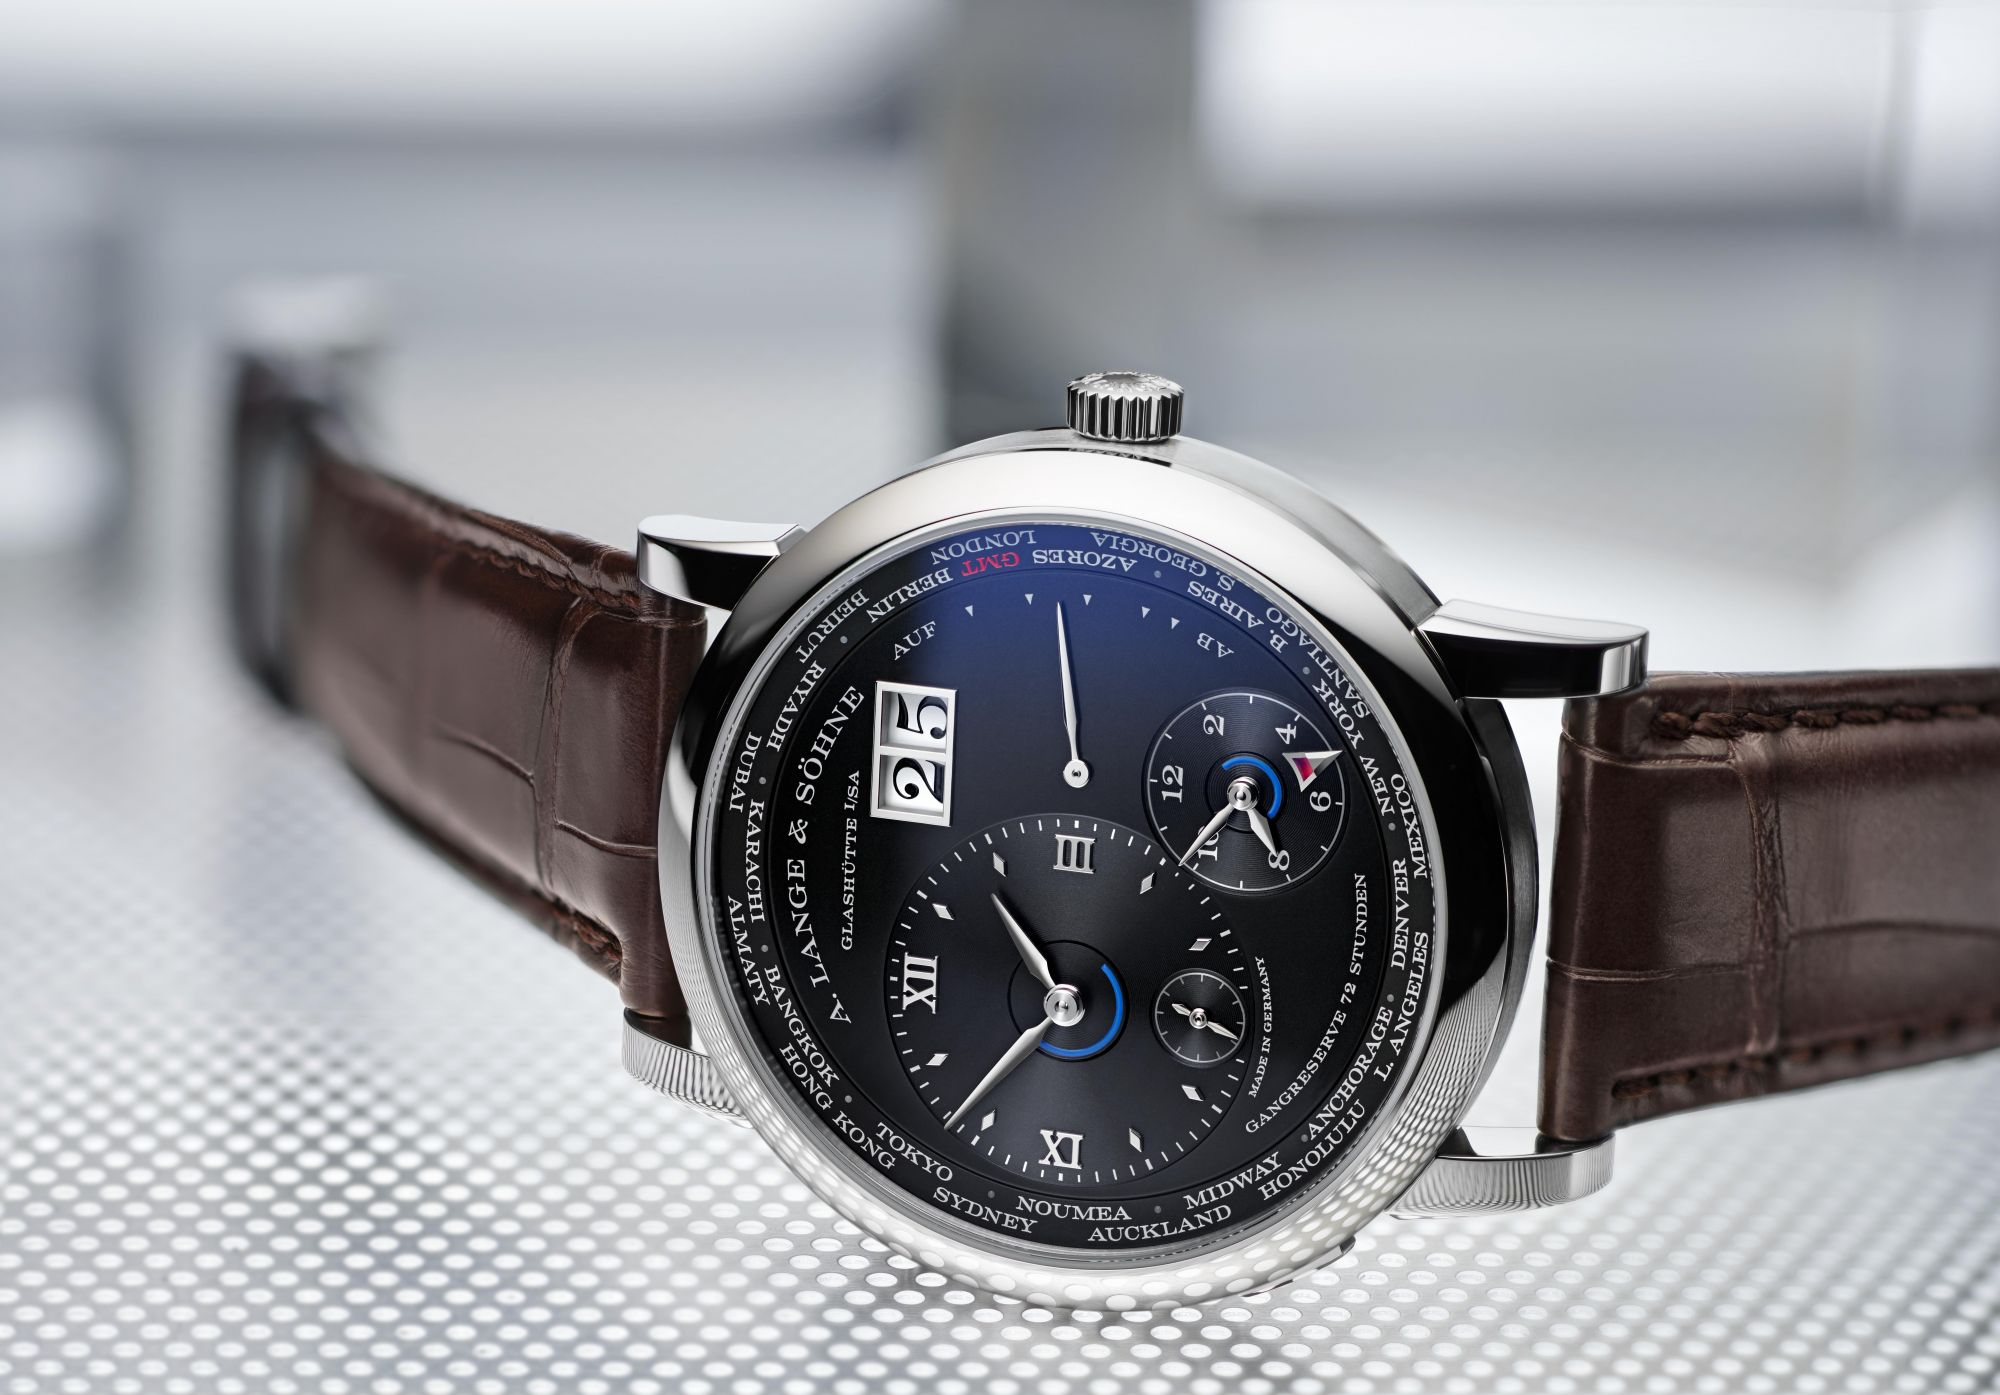 Lange 1 Time Zone腕錶 by A. Lange & Söhne。